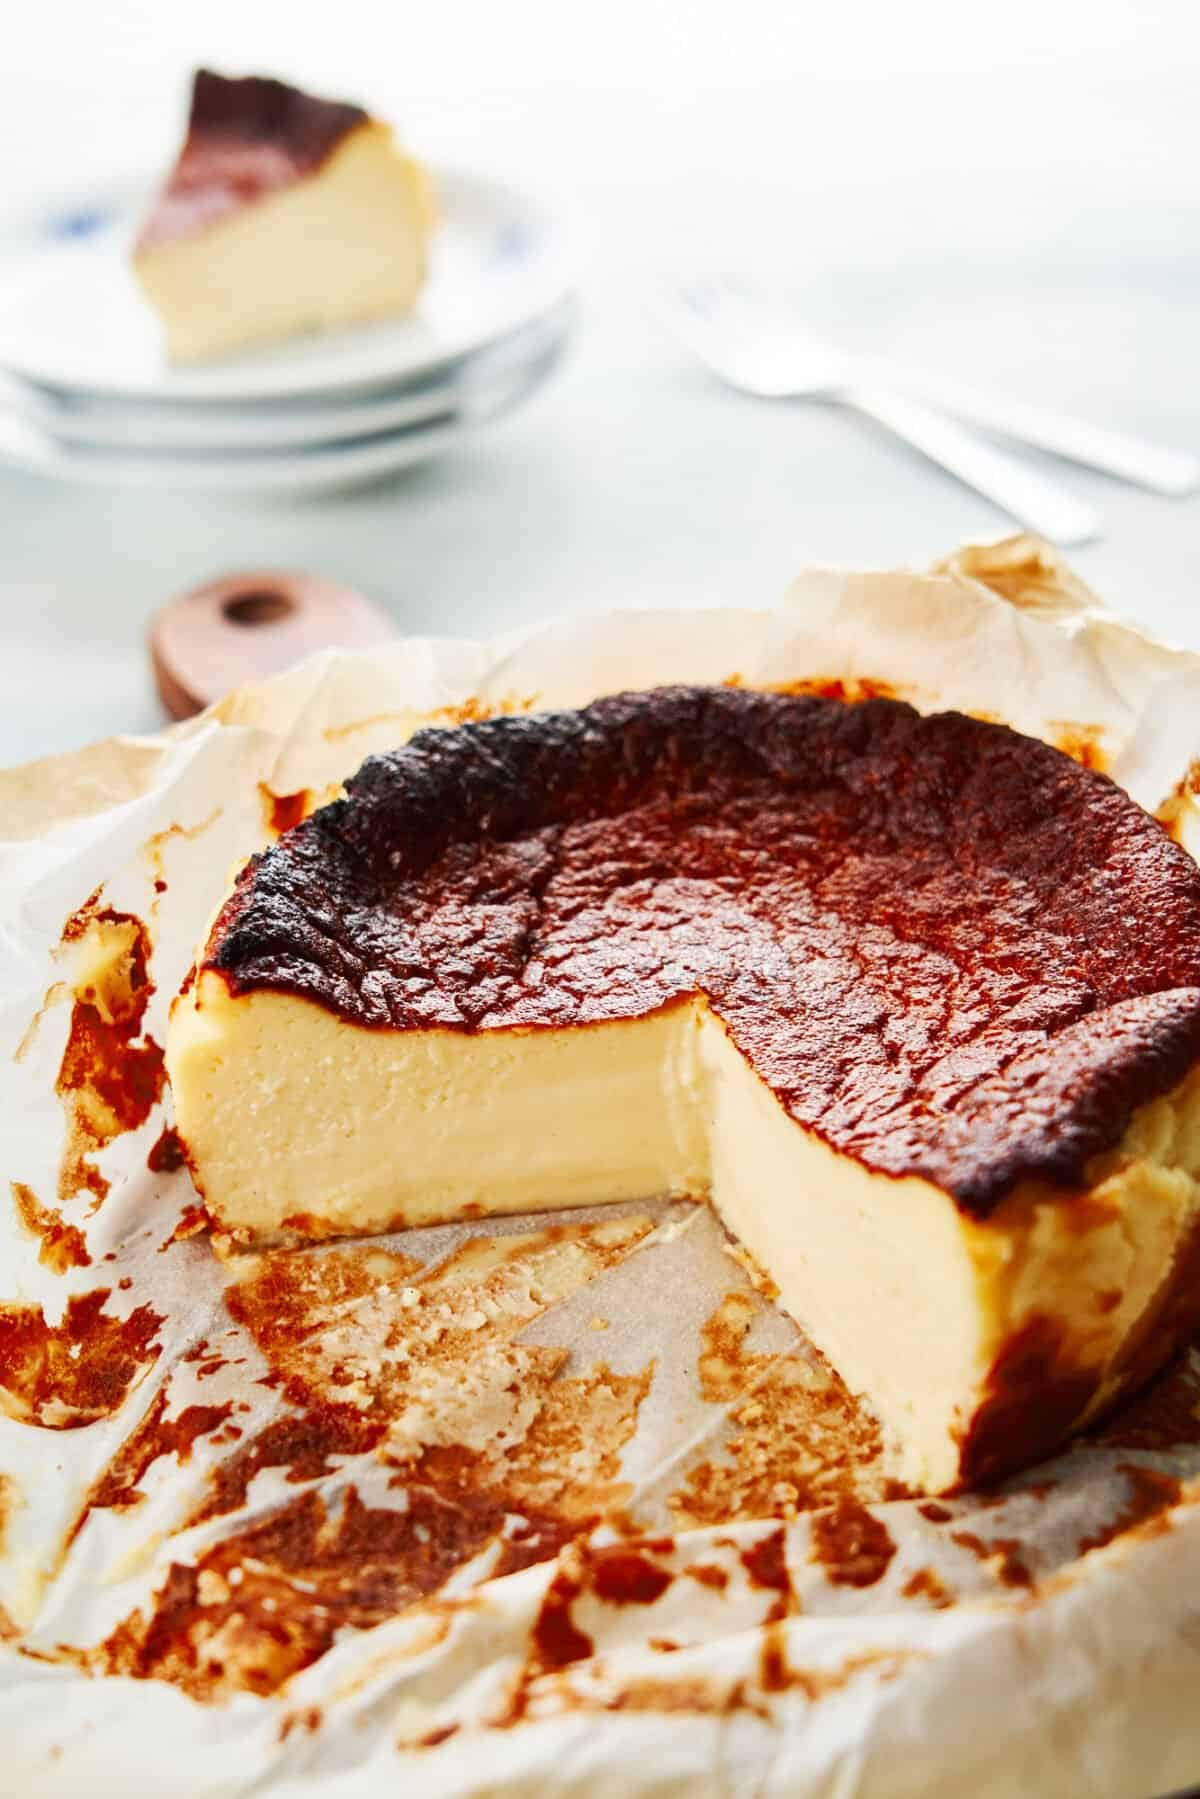 With a smooth custardy center and caramelized top, this ridiculously simple Burnt Basque Cheesecake recipe comes together from a handful of ingredients in a matter of minutes.